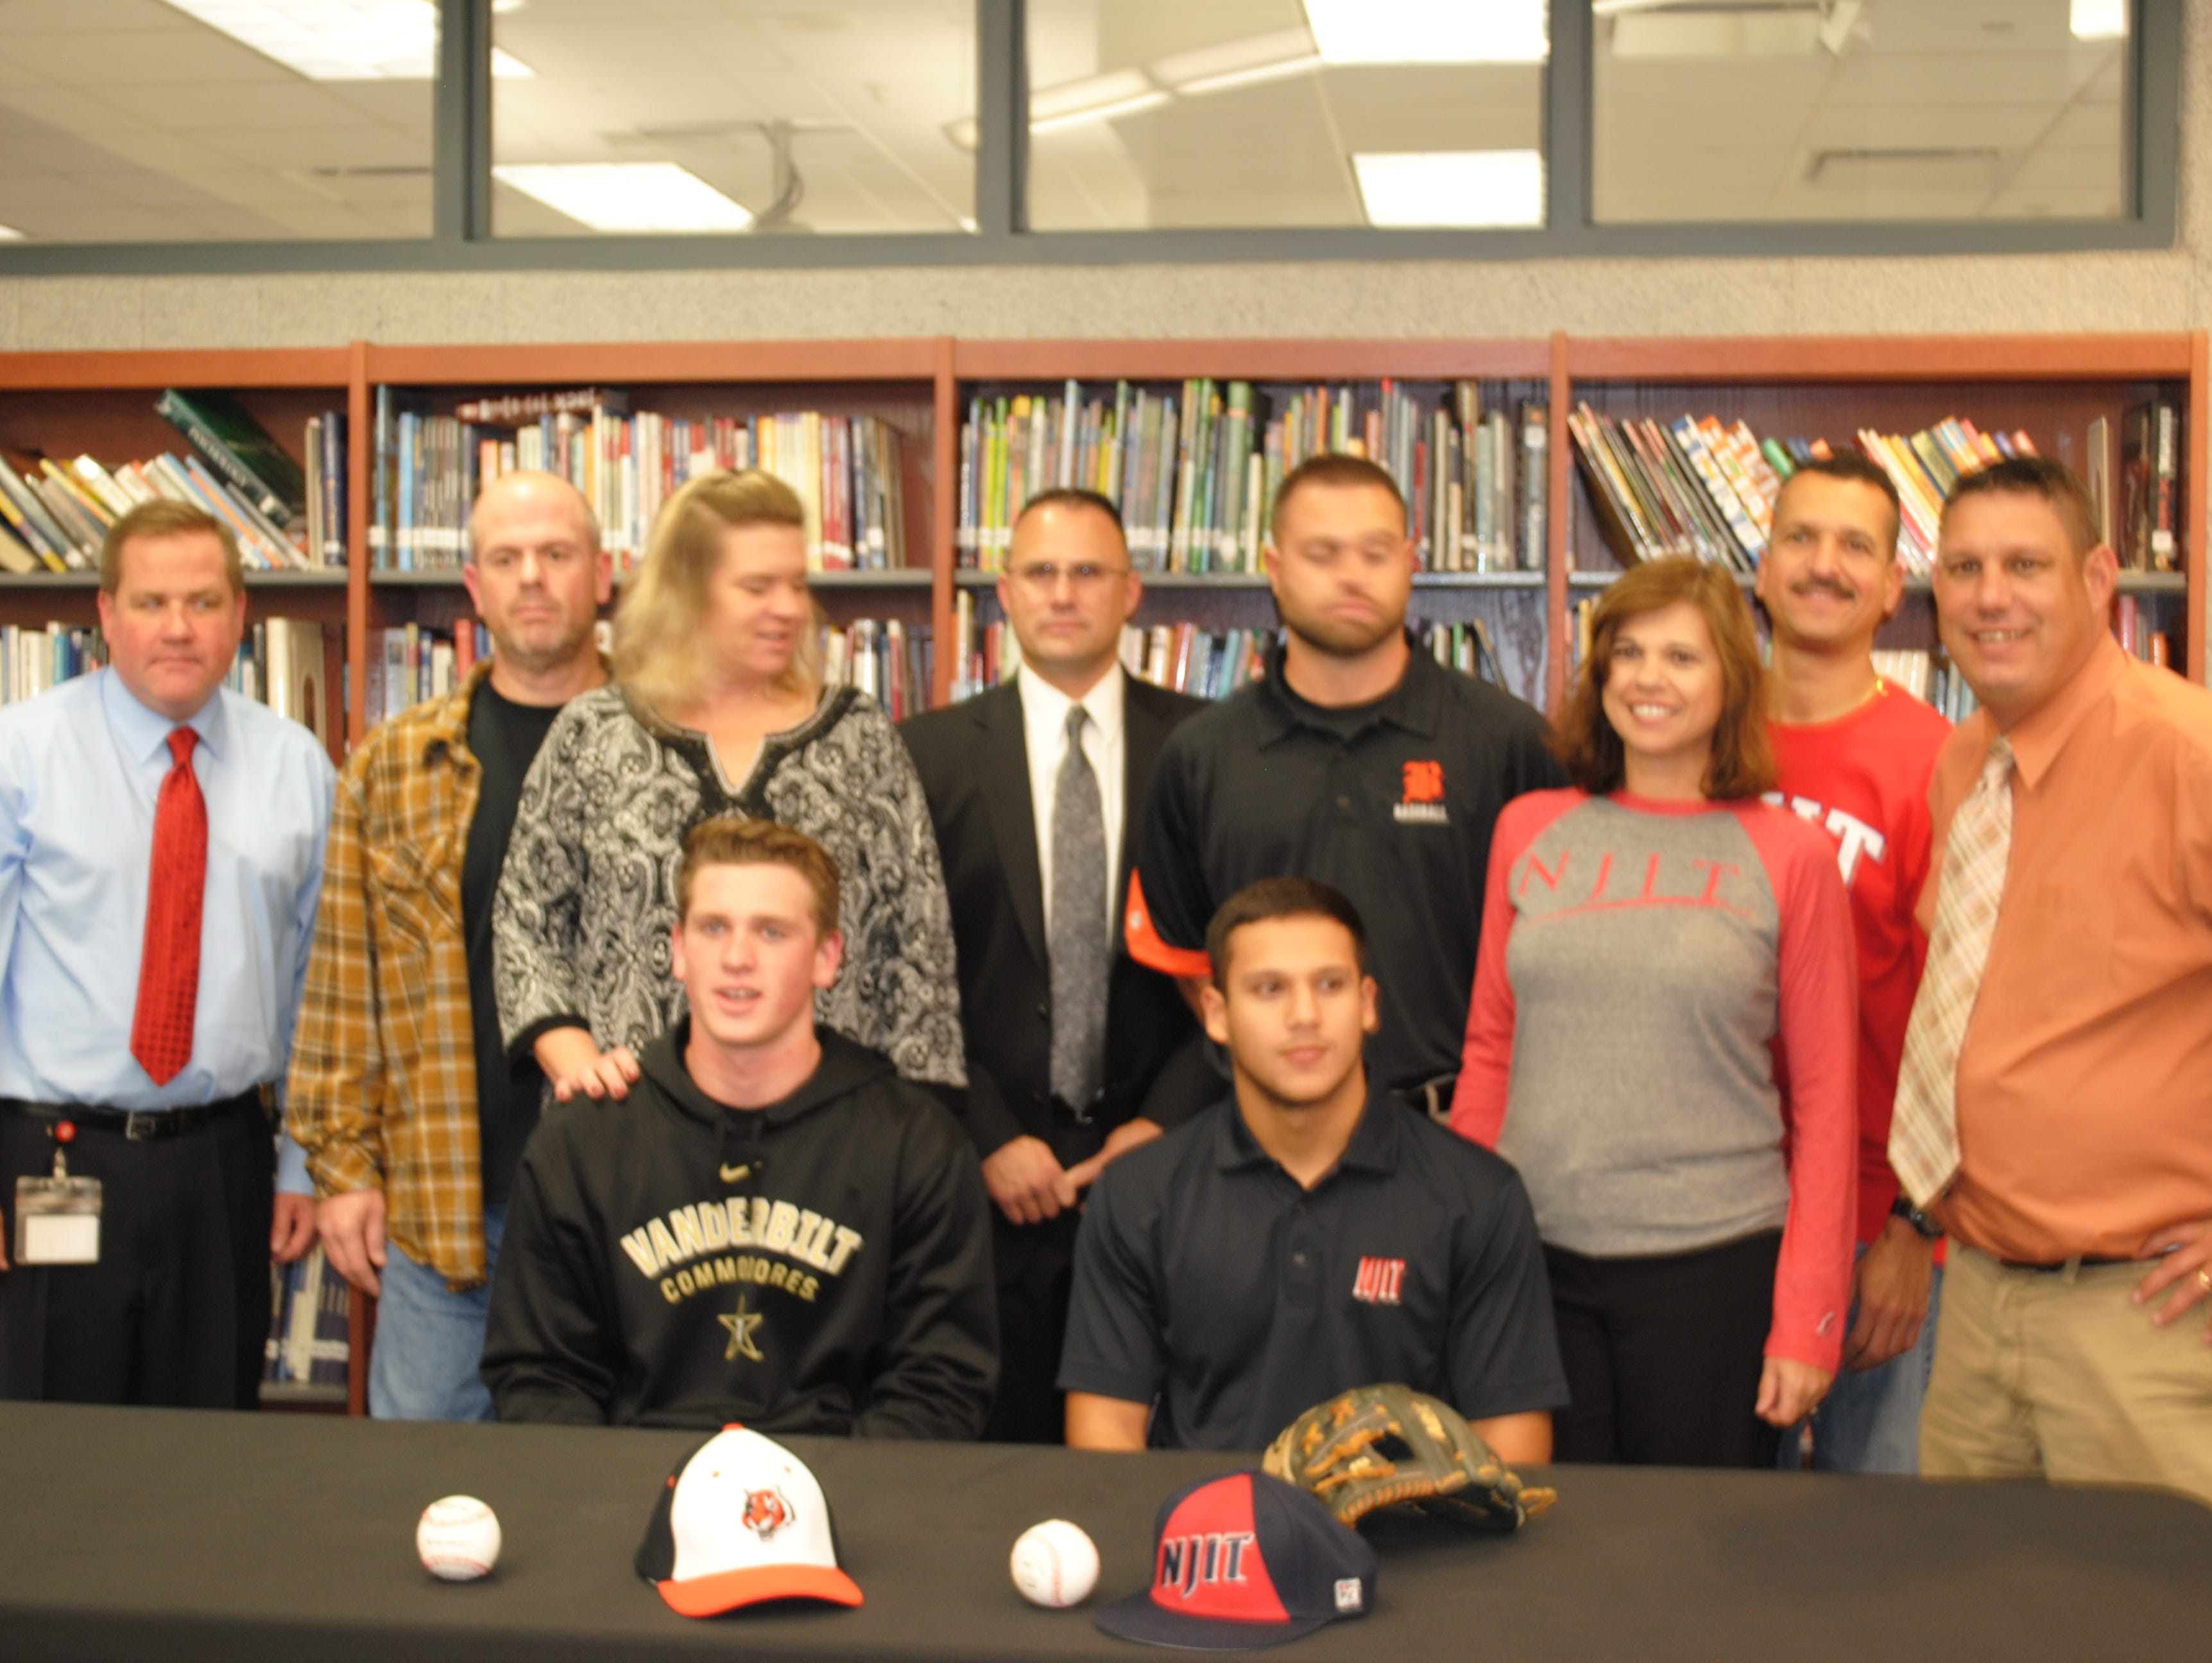 Barnegat baseball players Jared Kacso (NJIT) and Jason Groome (Vanderbilt) sign their NLI surrounded by family and coaches.